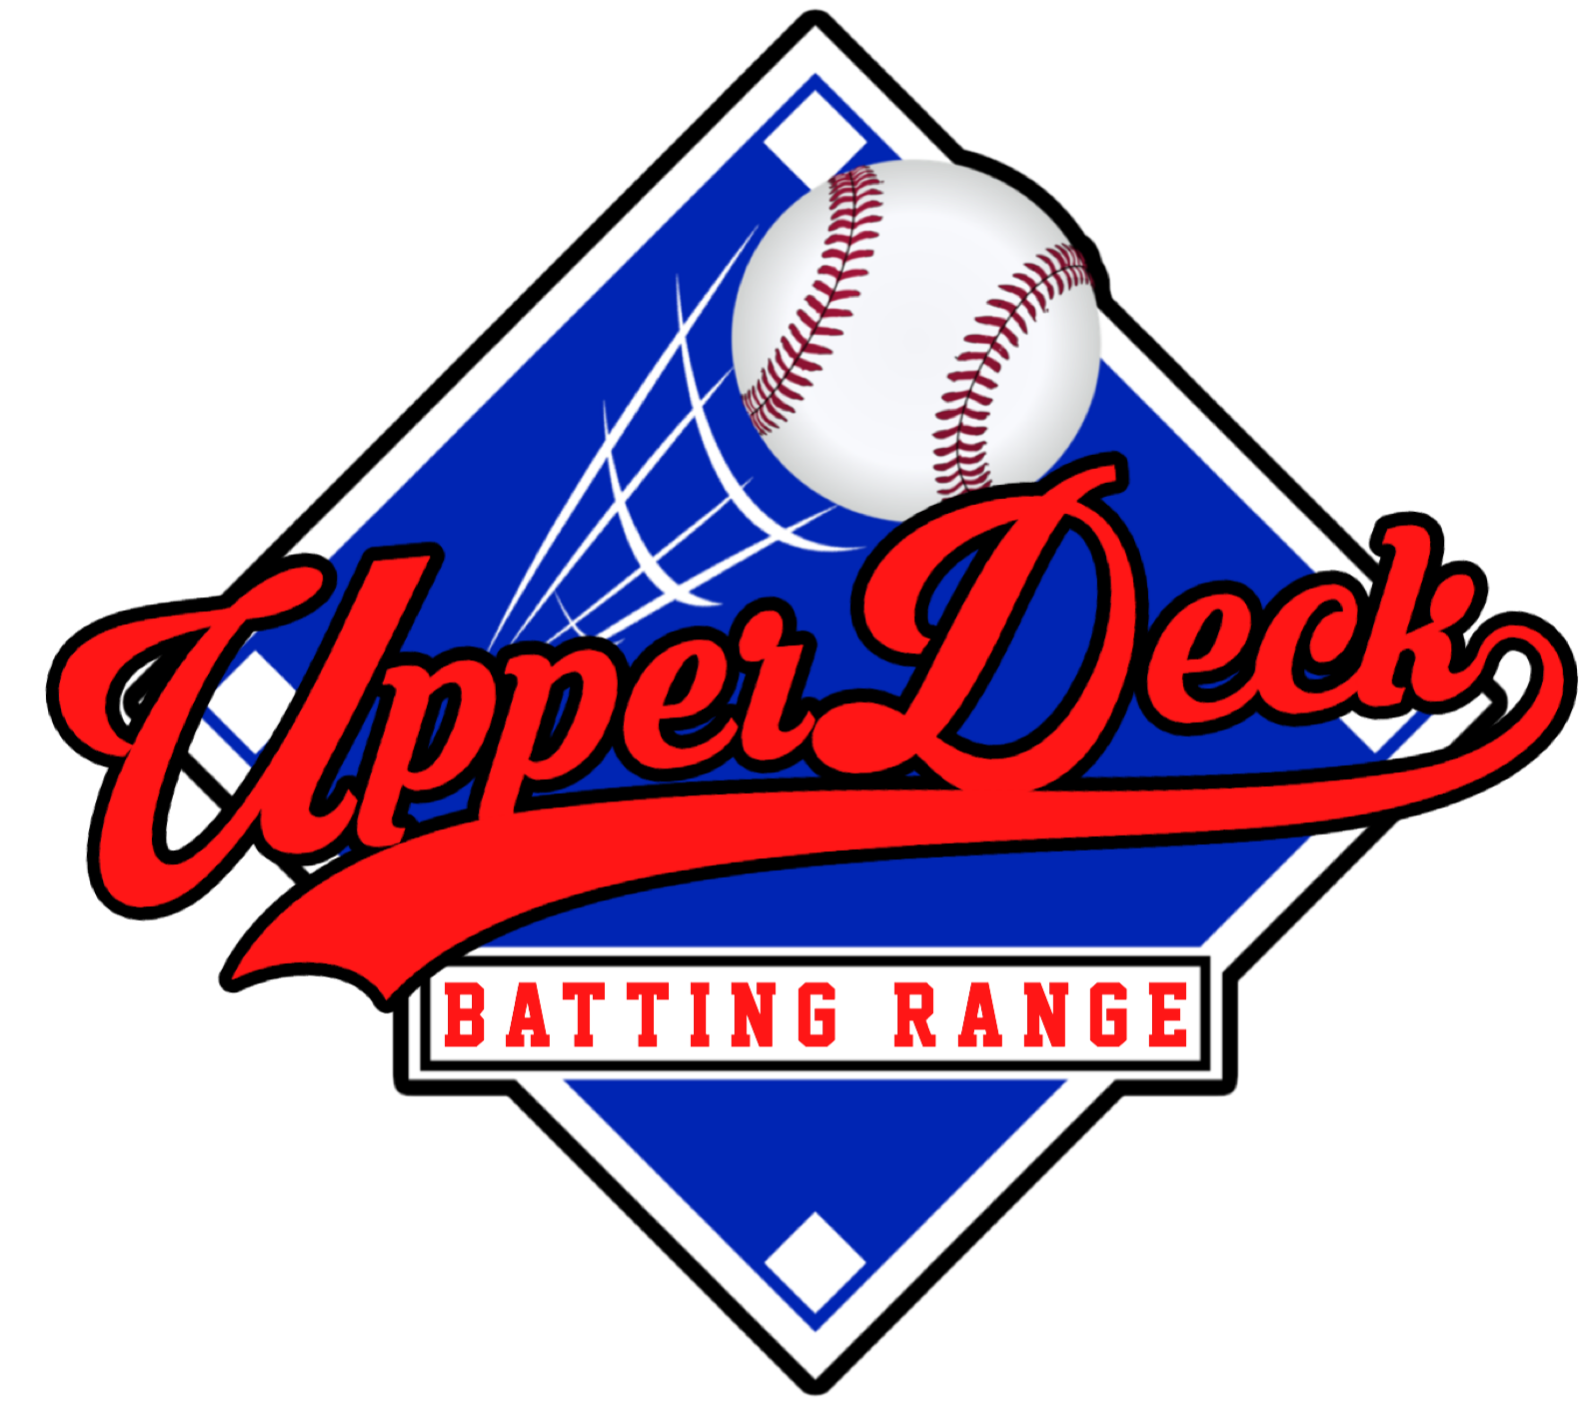 THE UPPER DECK BATTING RANGE